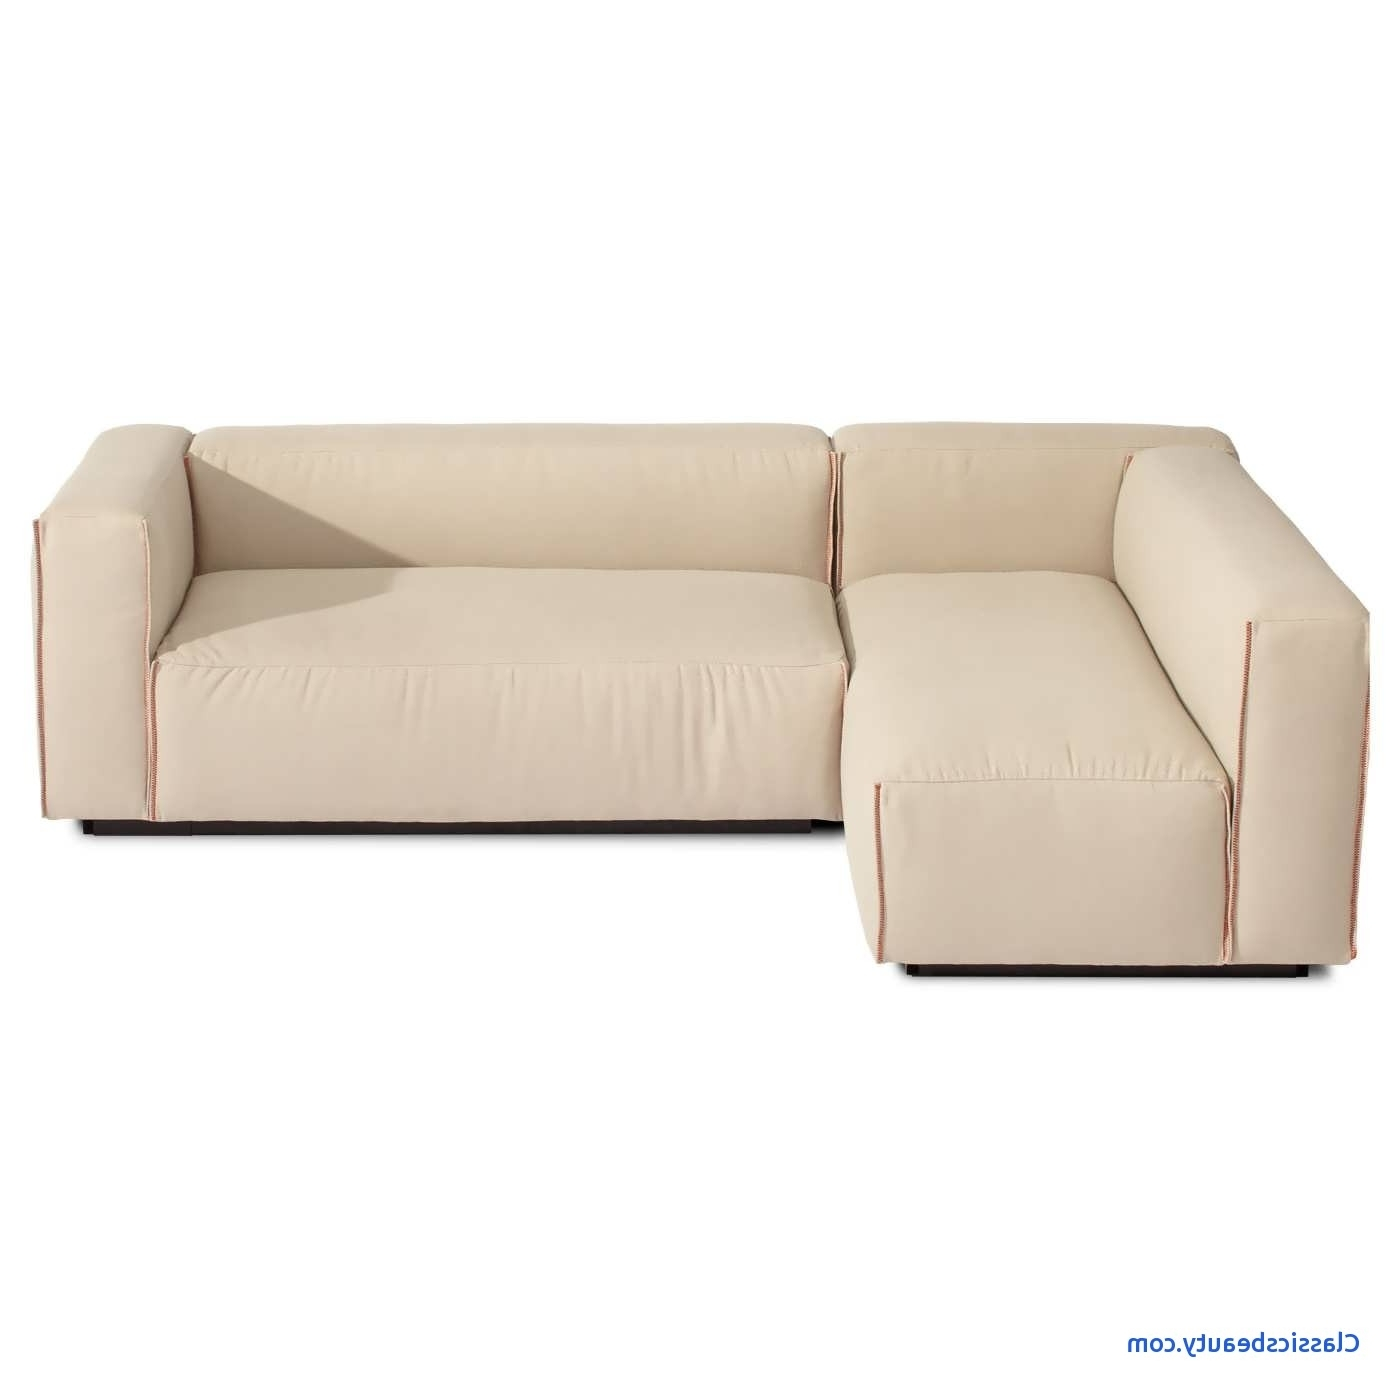 Small Sofas Elegant Sofa Corner Sofa Sectional Sleeper Sofa Chaise With Well Known Small Chaise Sofas (View 15 of 15)